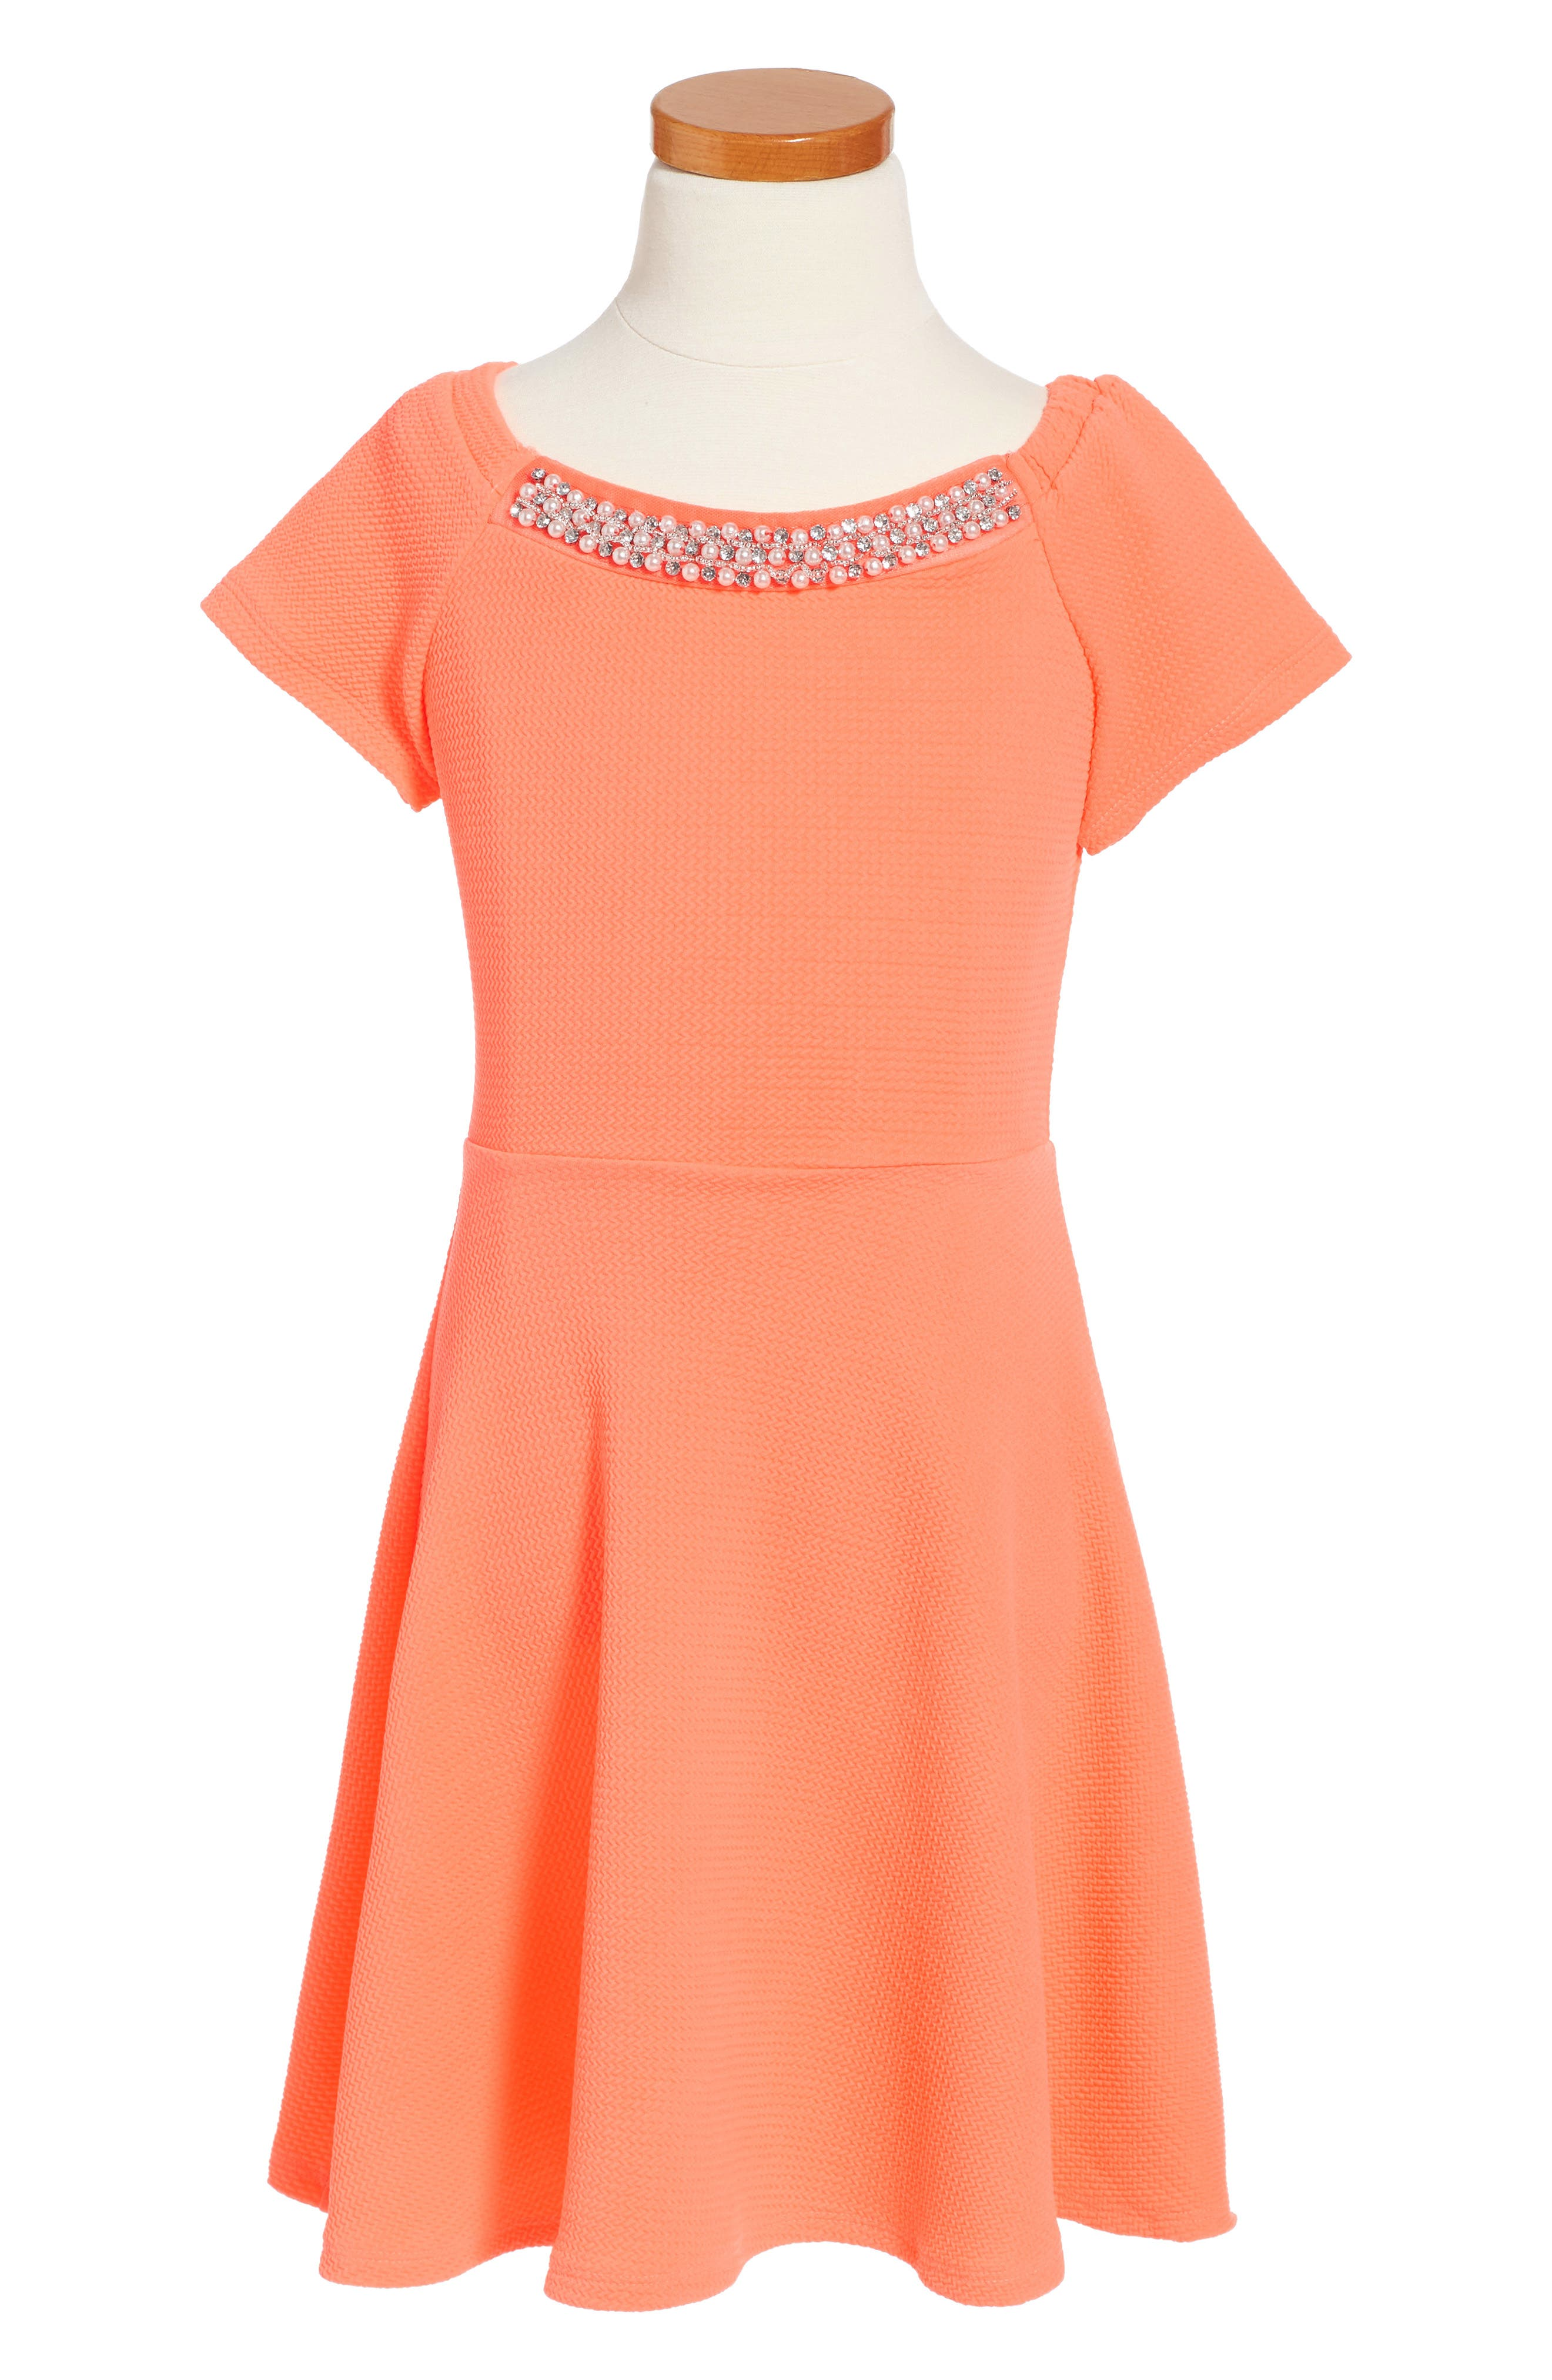 Monteau Couture Skater Dress (Big Girls)